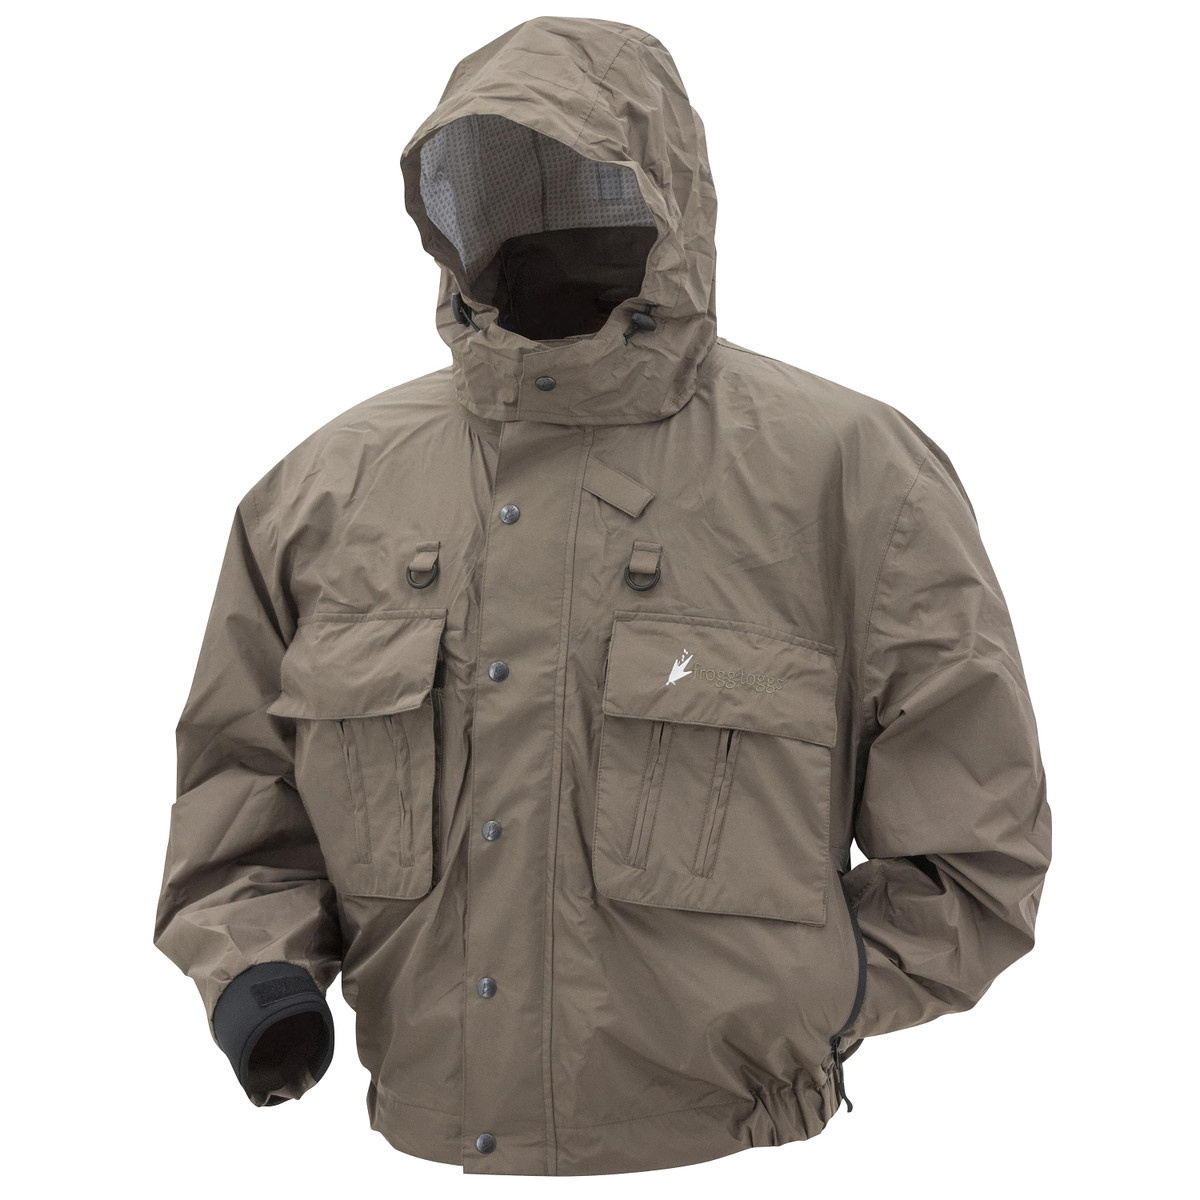 Frogg Toggs Frogg Toggs Hellbender Fly and Wading Jacket